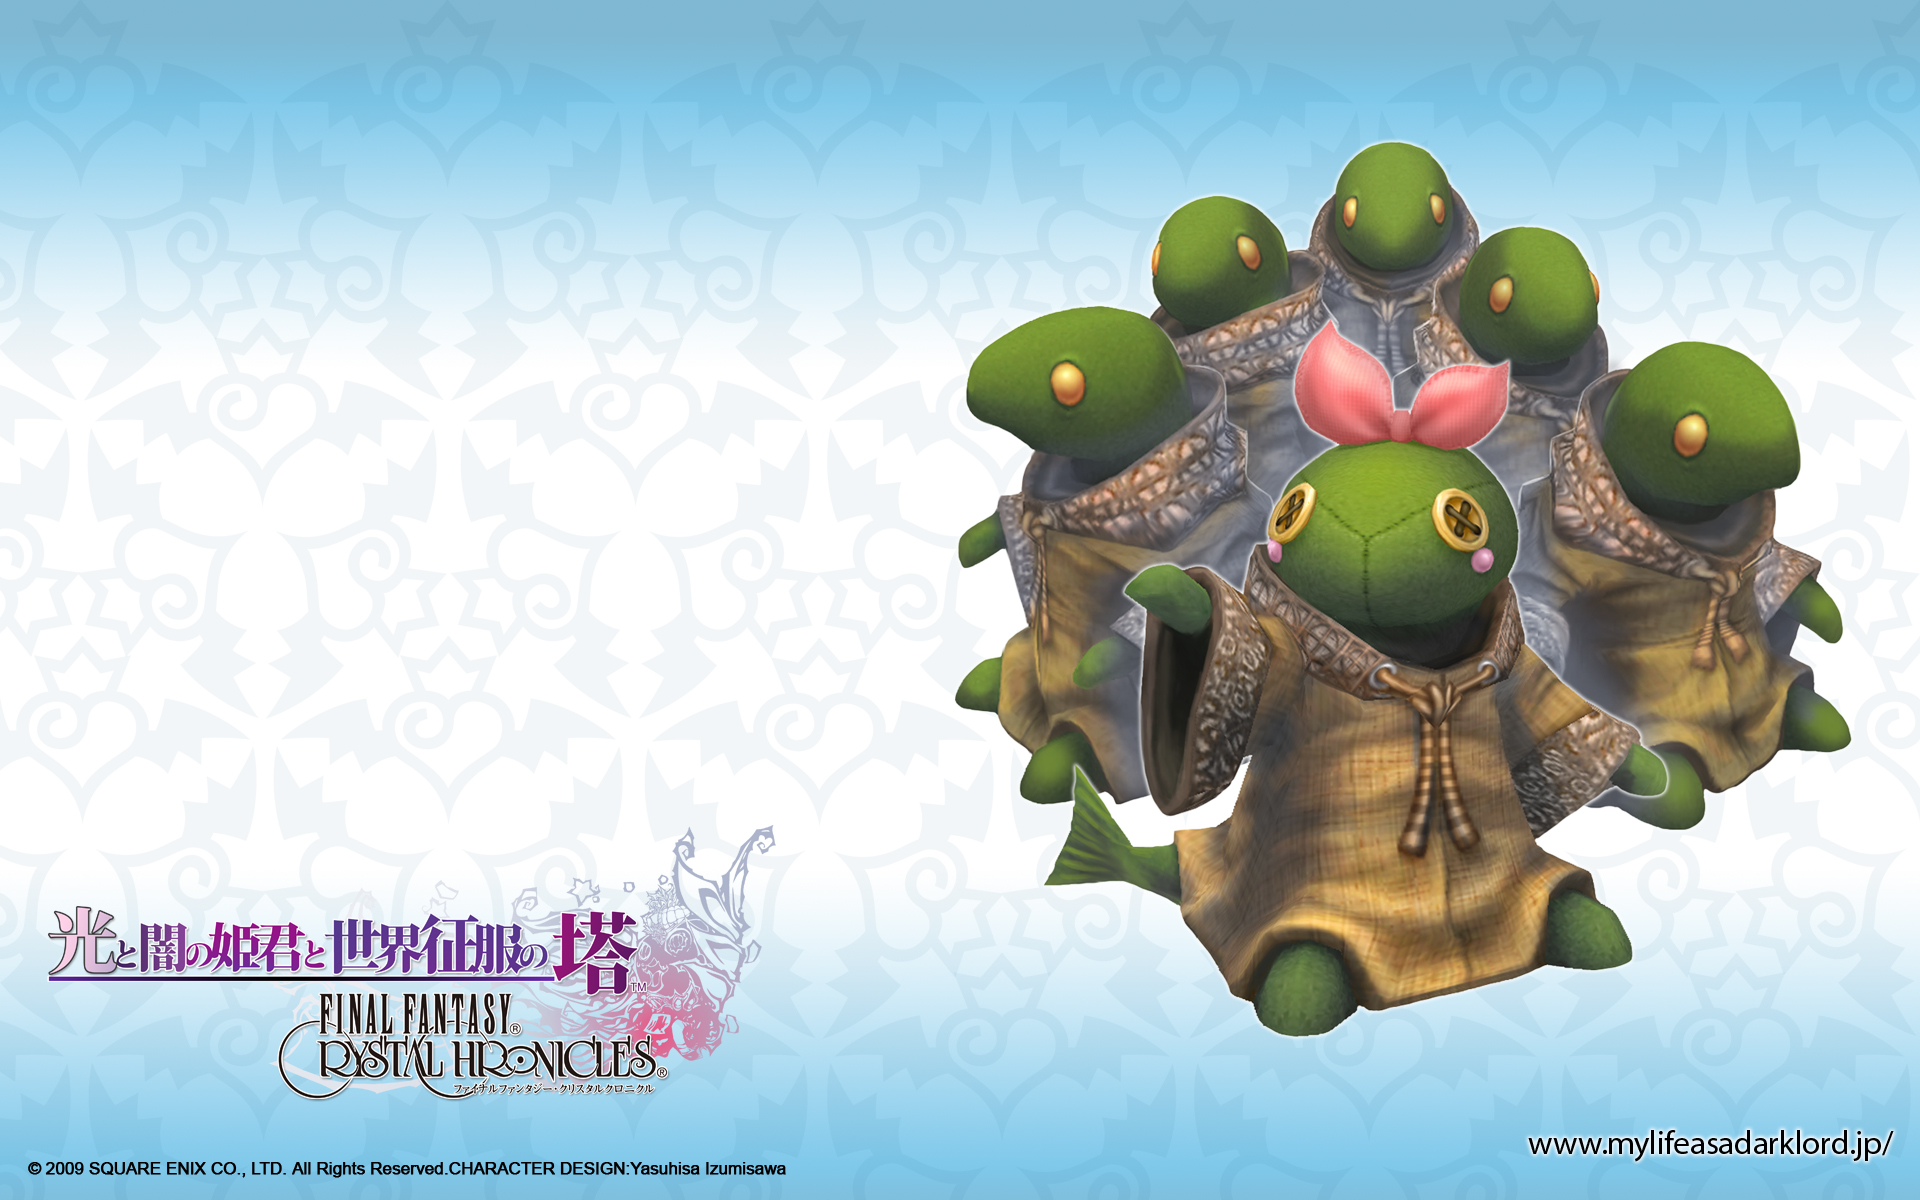 Final Fantasy Crystal Chronicles Wallpapers Final Fantasy Wiki